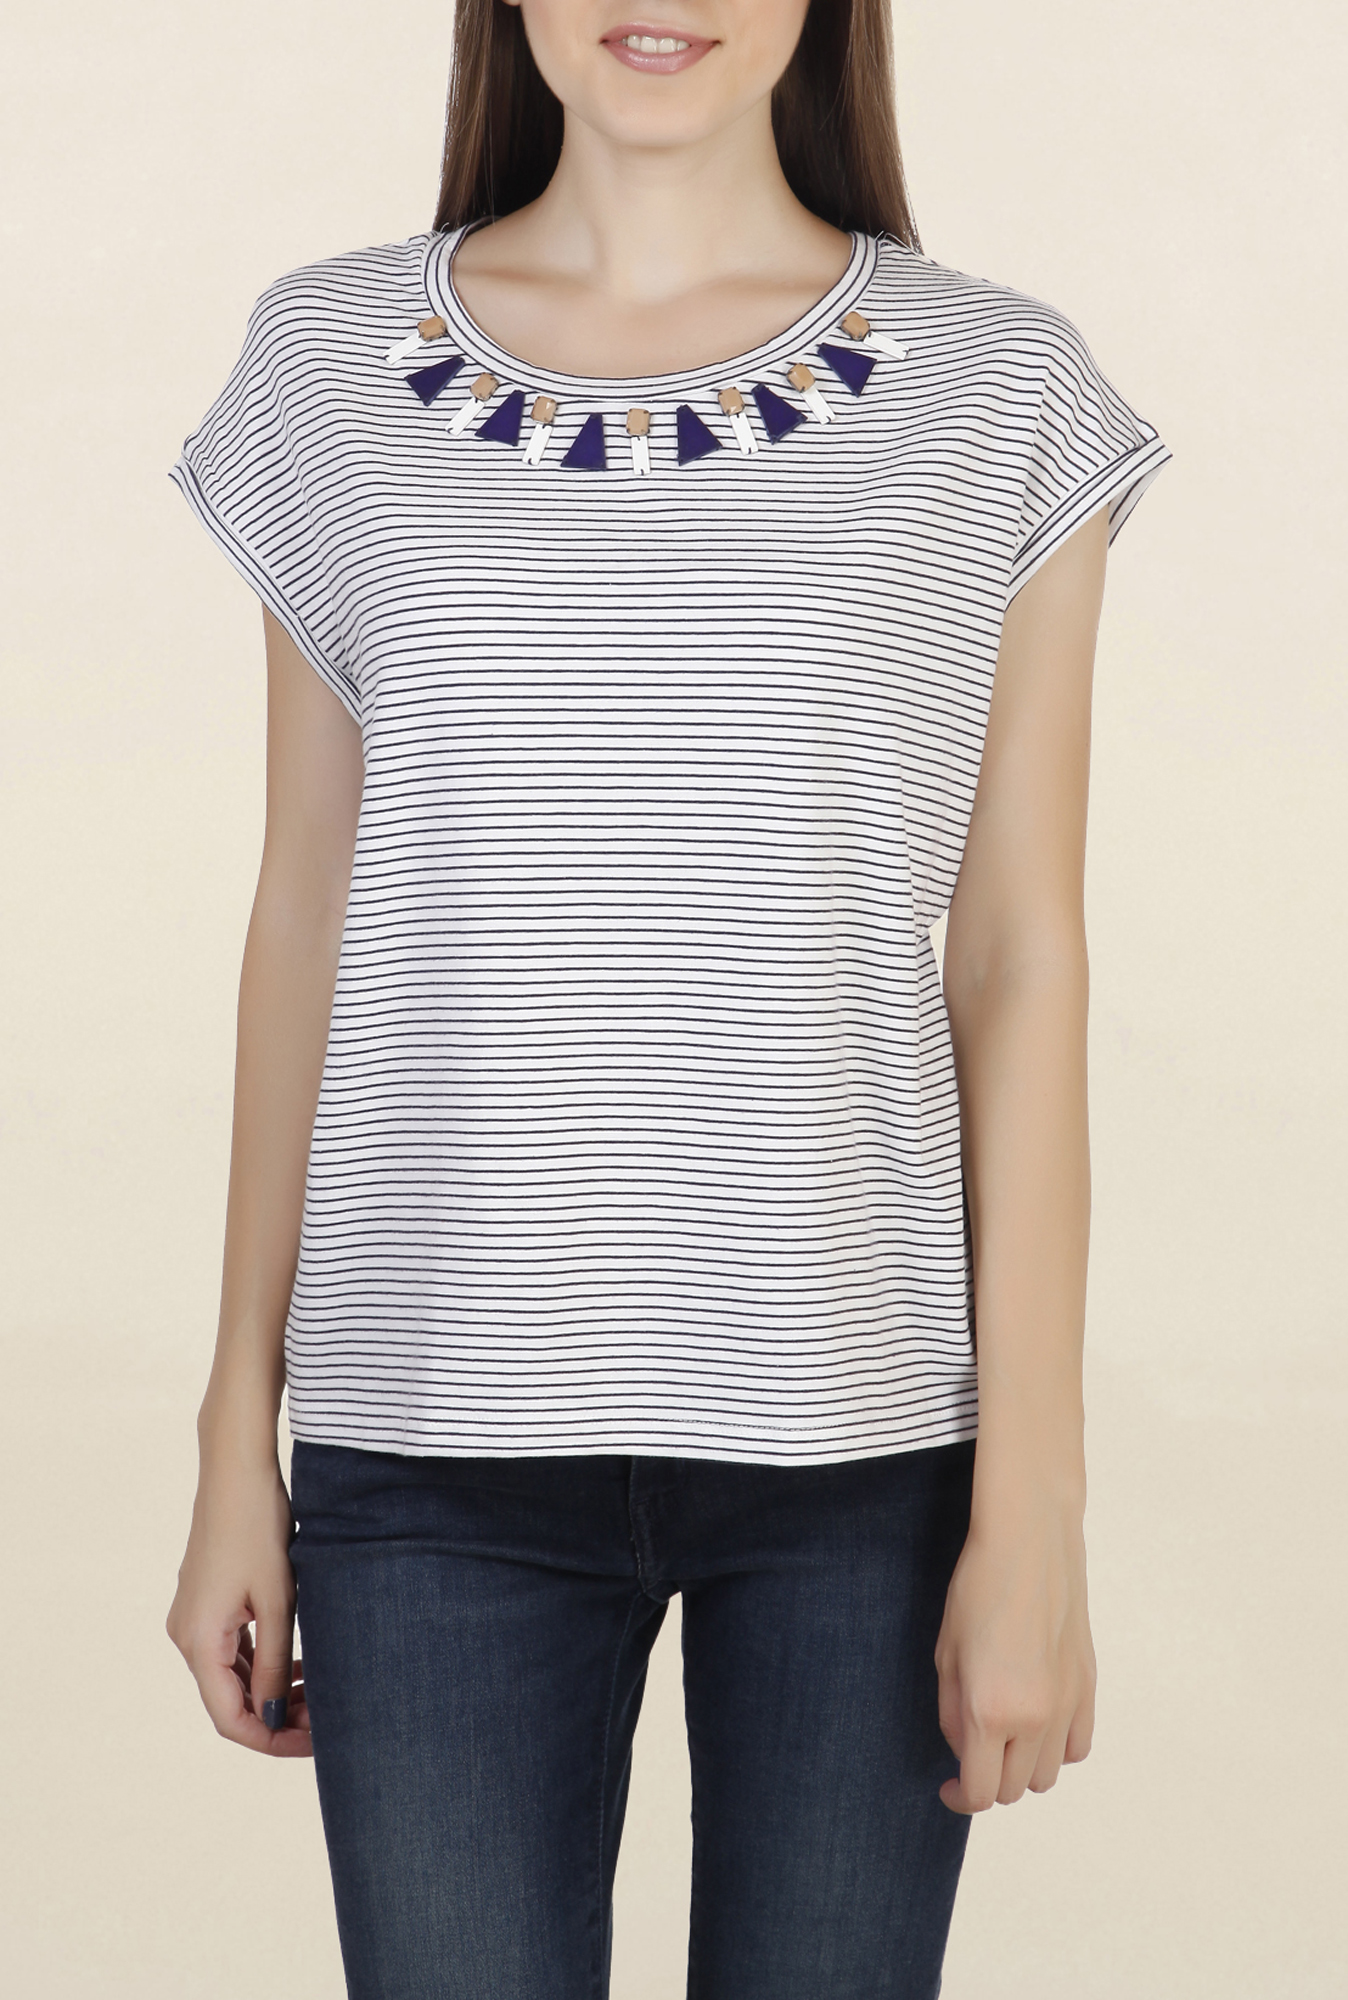 Chemistry Navy & White Striped Top